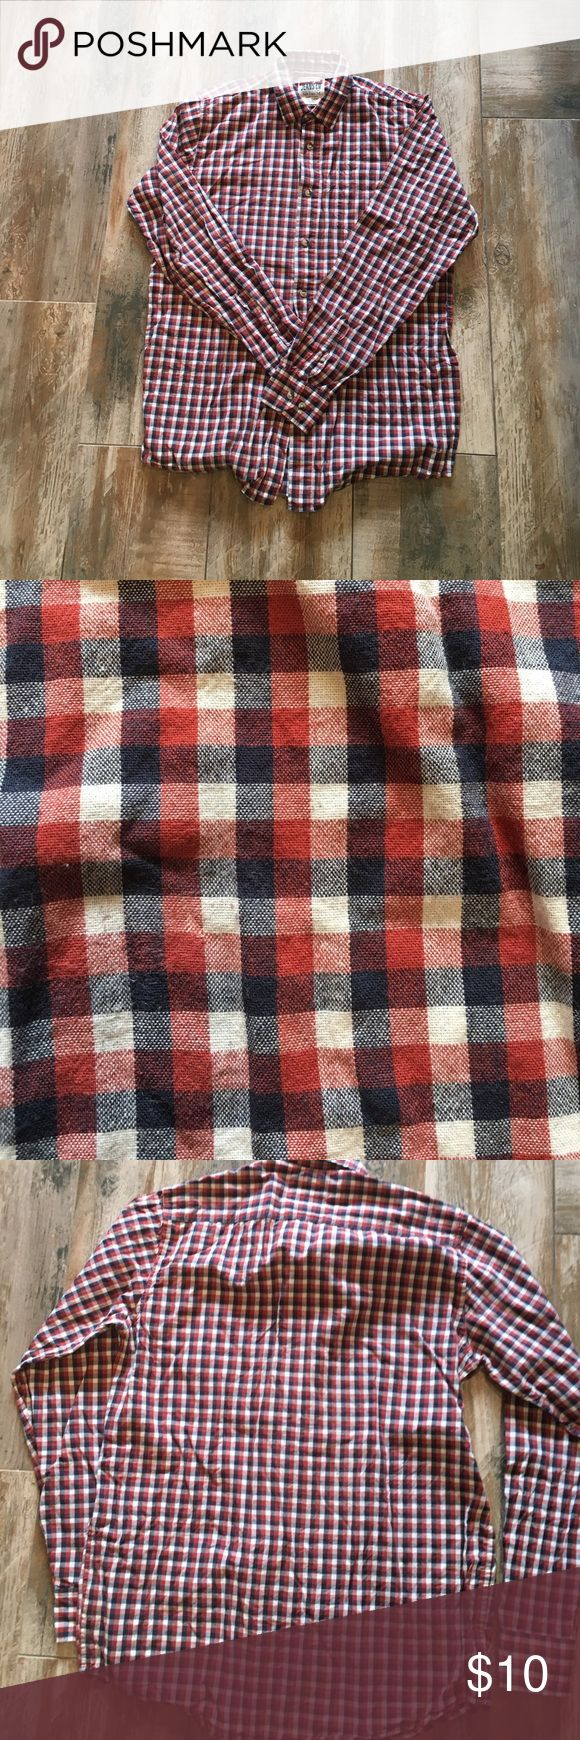 Wrangler navy white and red checkered shirt Wrangler red white and blue checkered shirt. In good used condition. Had one stain where got white out on it. I don't think it's noticeable at this point. 100% cotton. Wrangler Shirts Casual Button Down Shirts